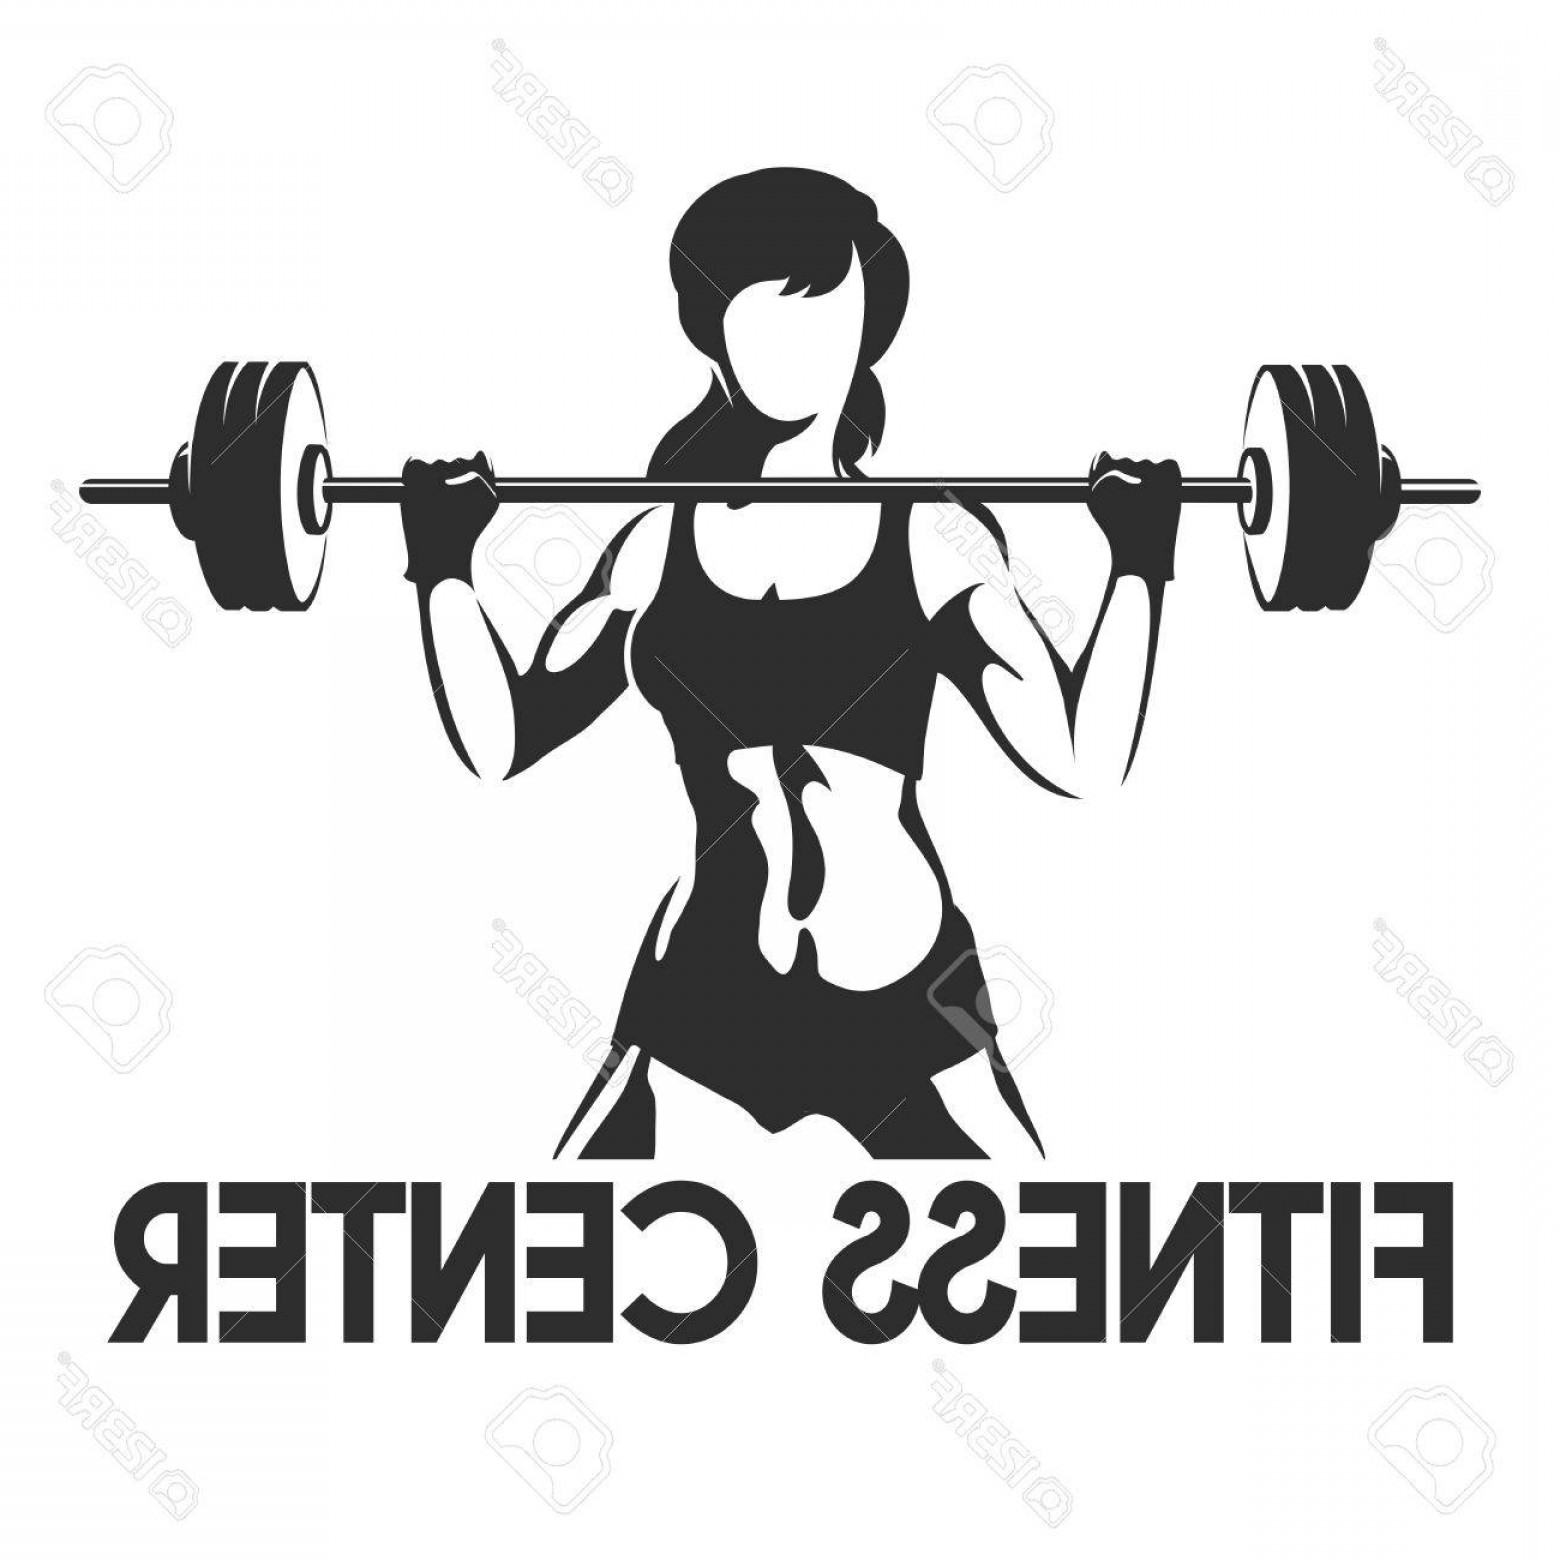 1560x1560 Photostock Vector Fitness Center Or Gym Emblem Sporty Woman